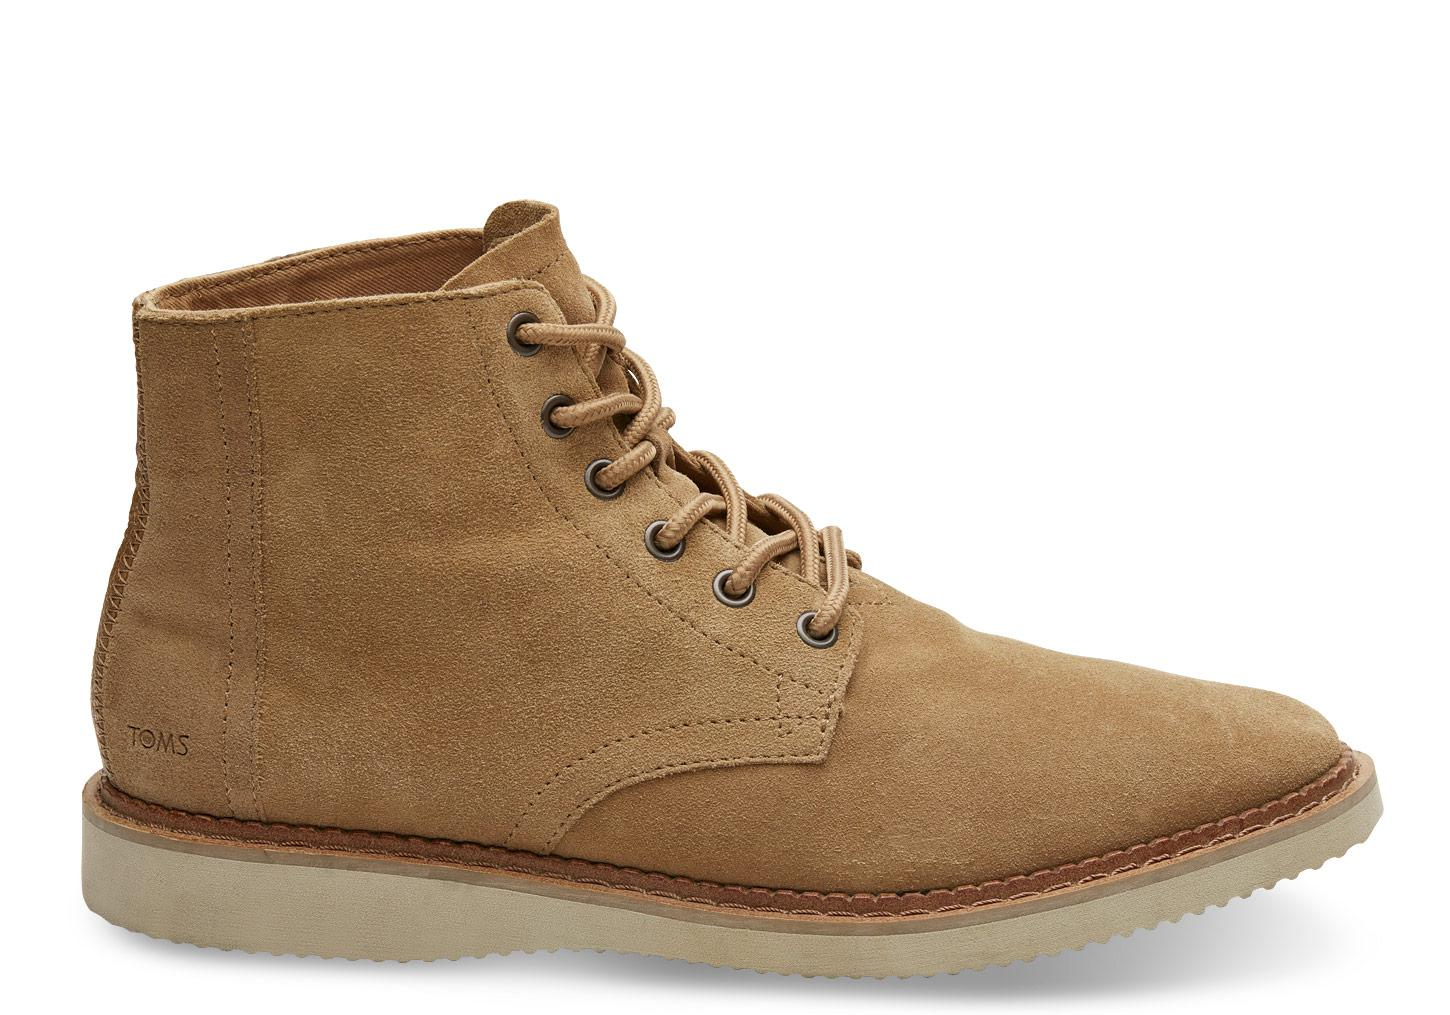 623a64650a7 Lyst - TOMS Toffee Suede Porter in Brown for Men